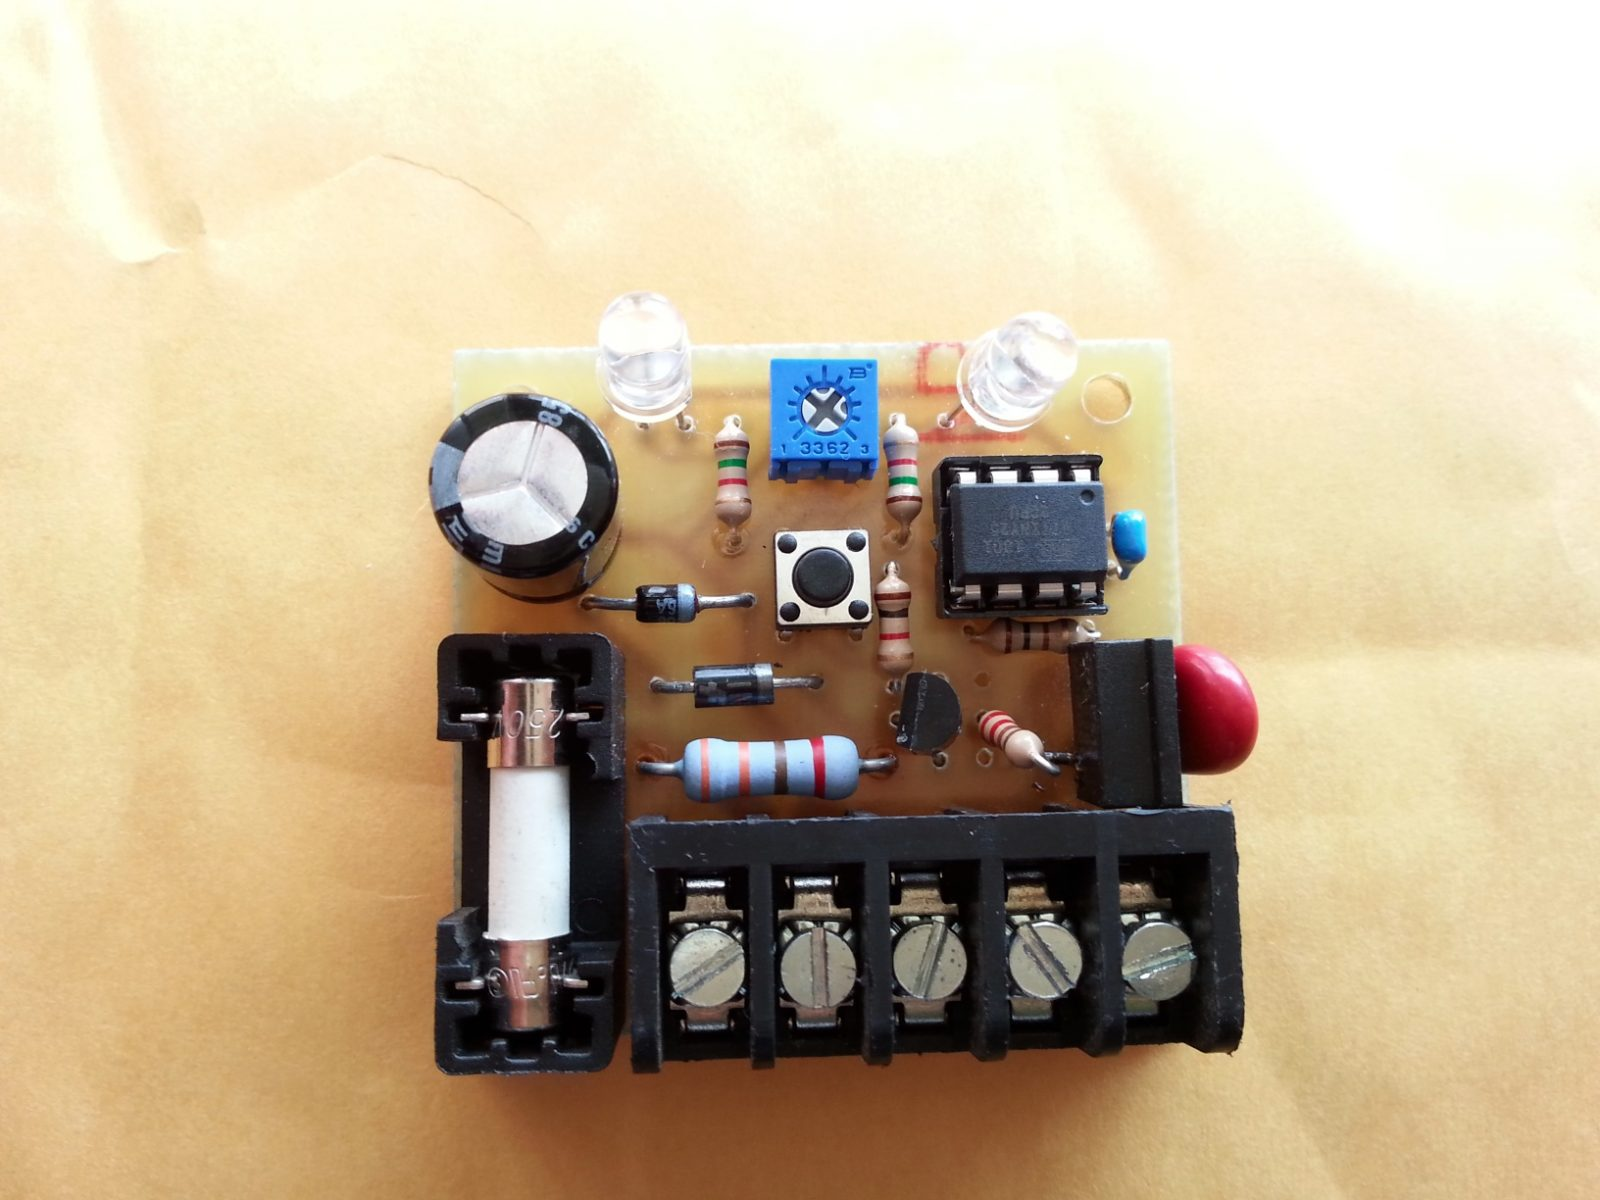 Automatic Water Timer Use Arduino For Projectsuse Projects Based Electronics Proojects